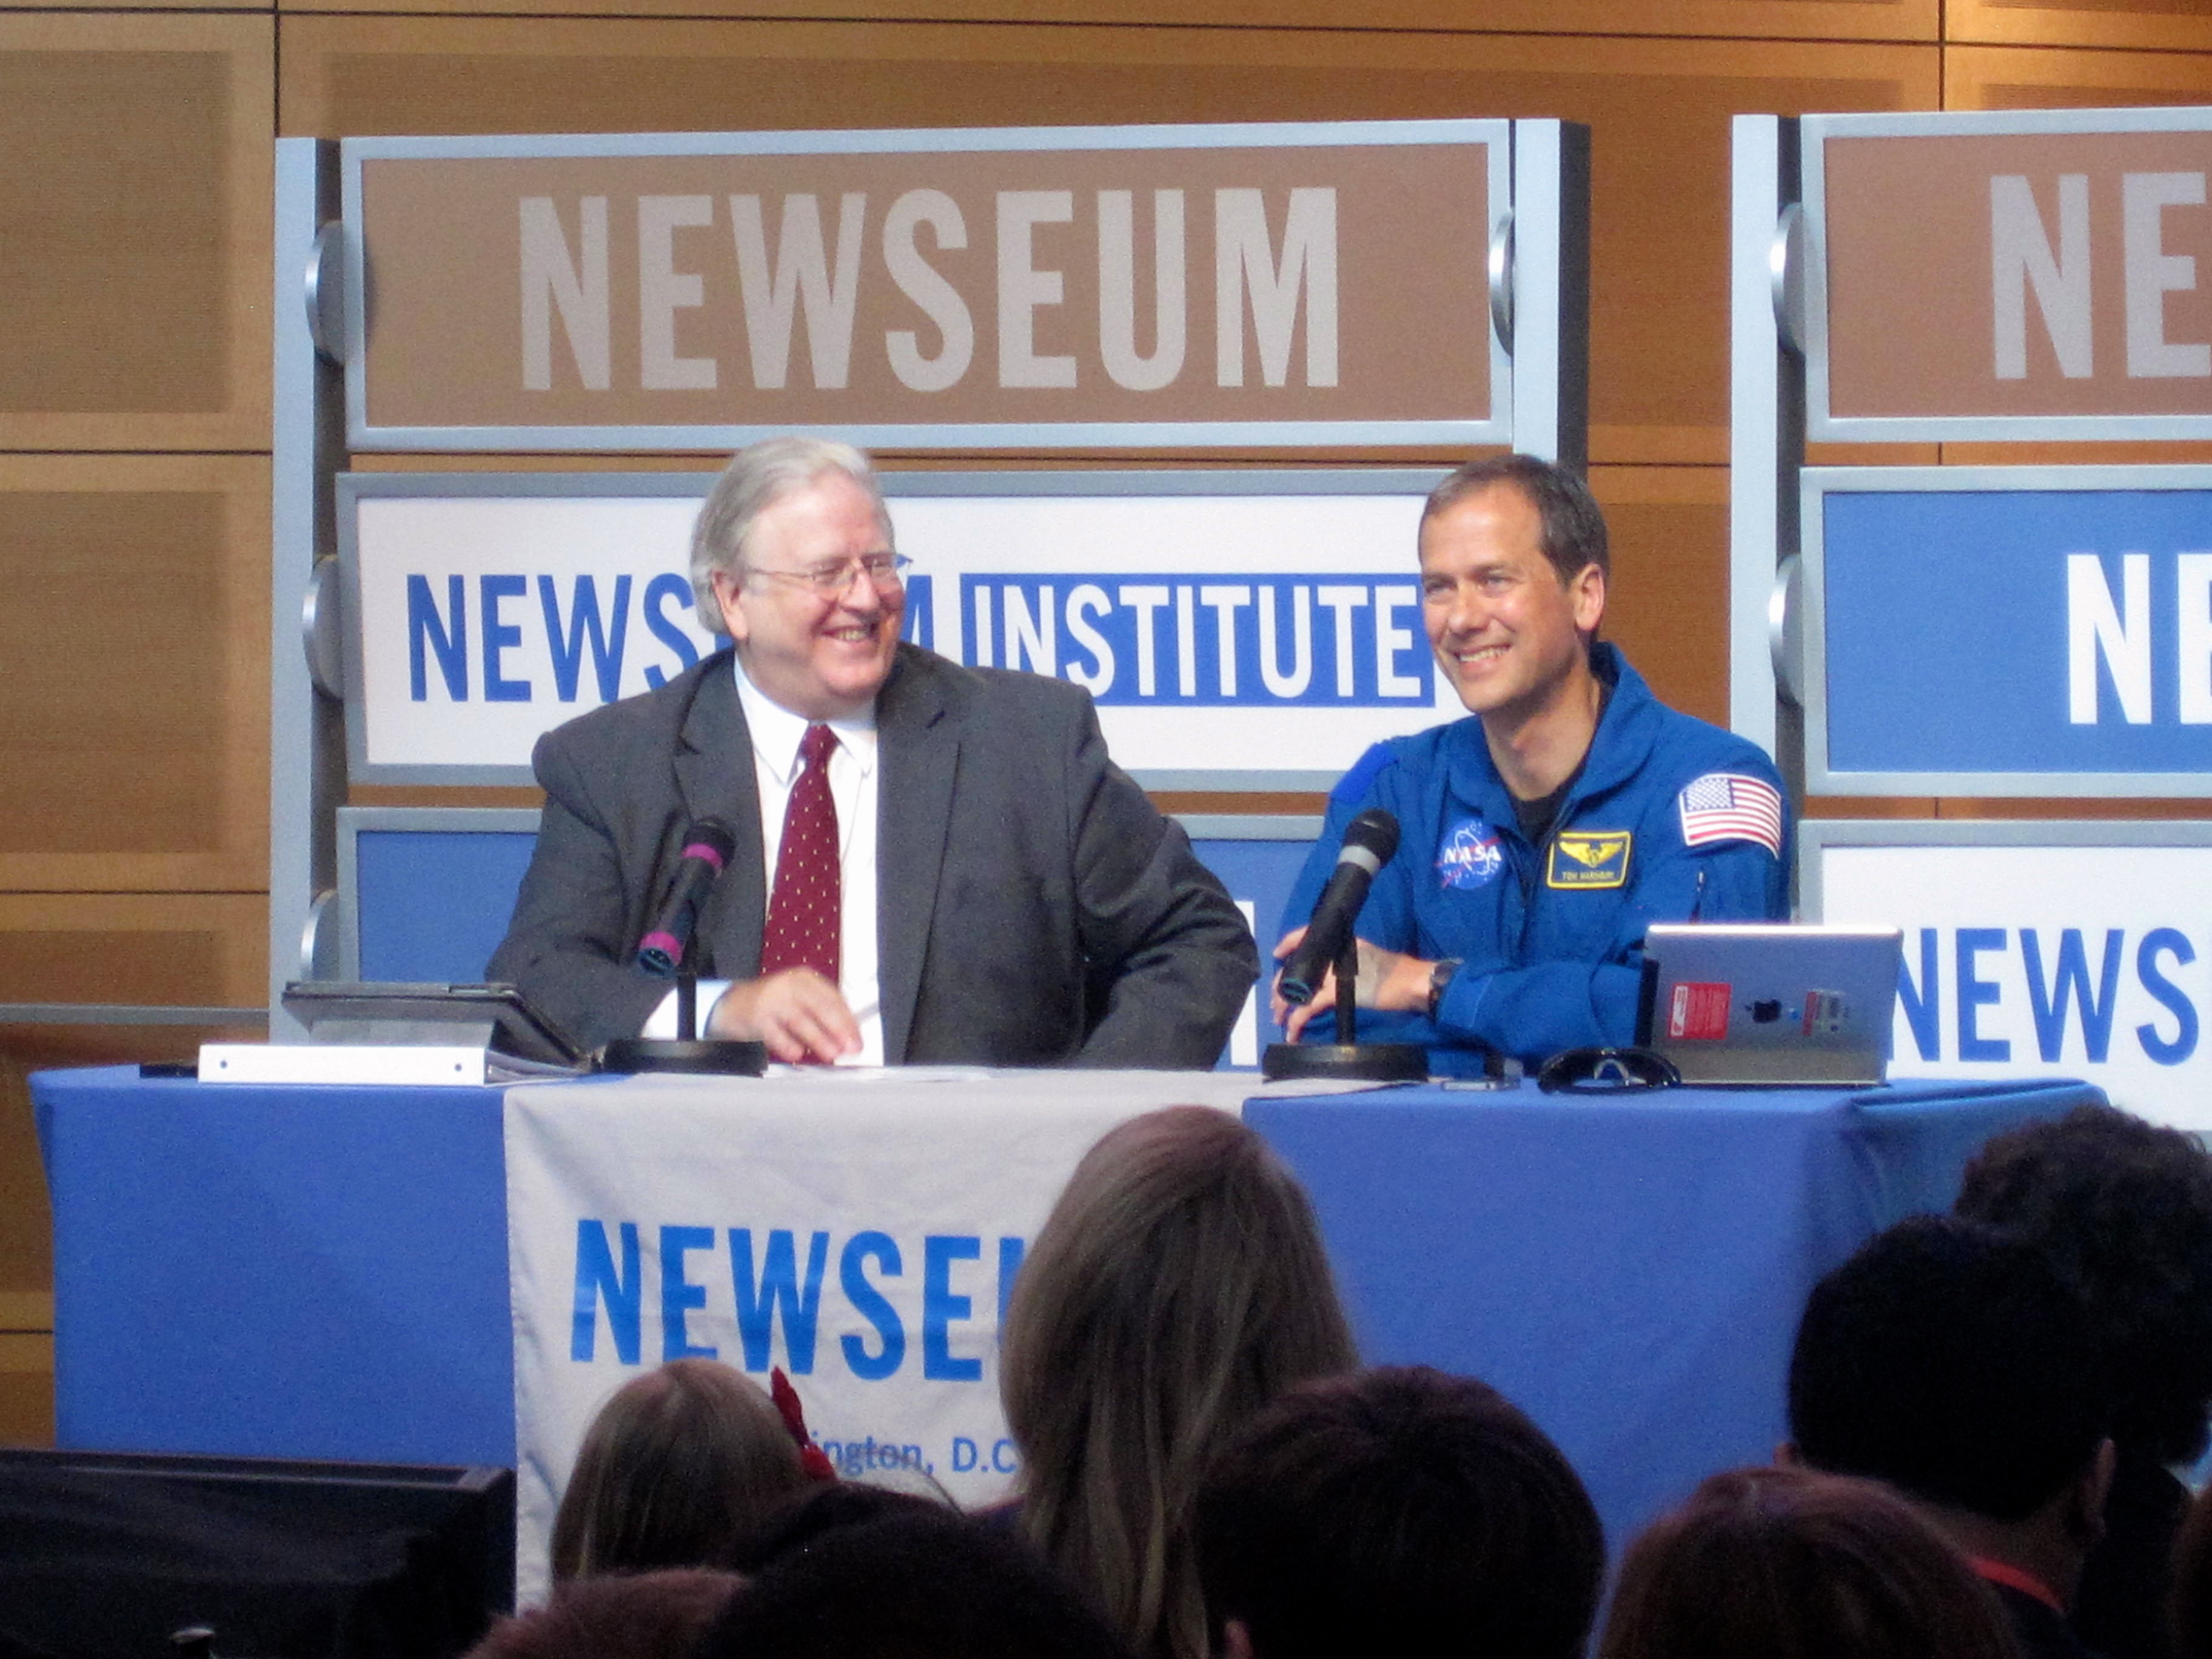 NASA Astronaut Tom Mashburn Suggests a Spacewalk for Global Policymakers